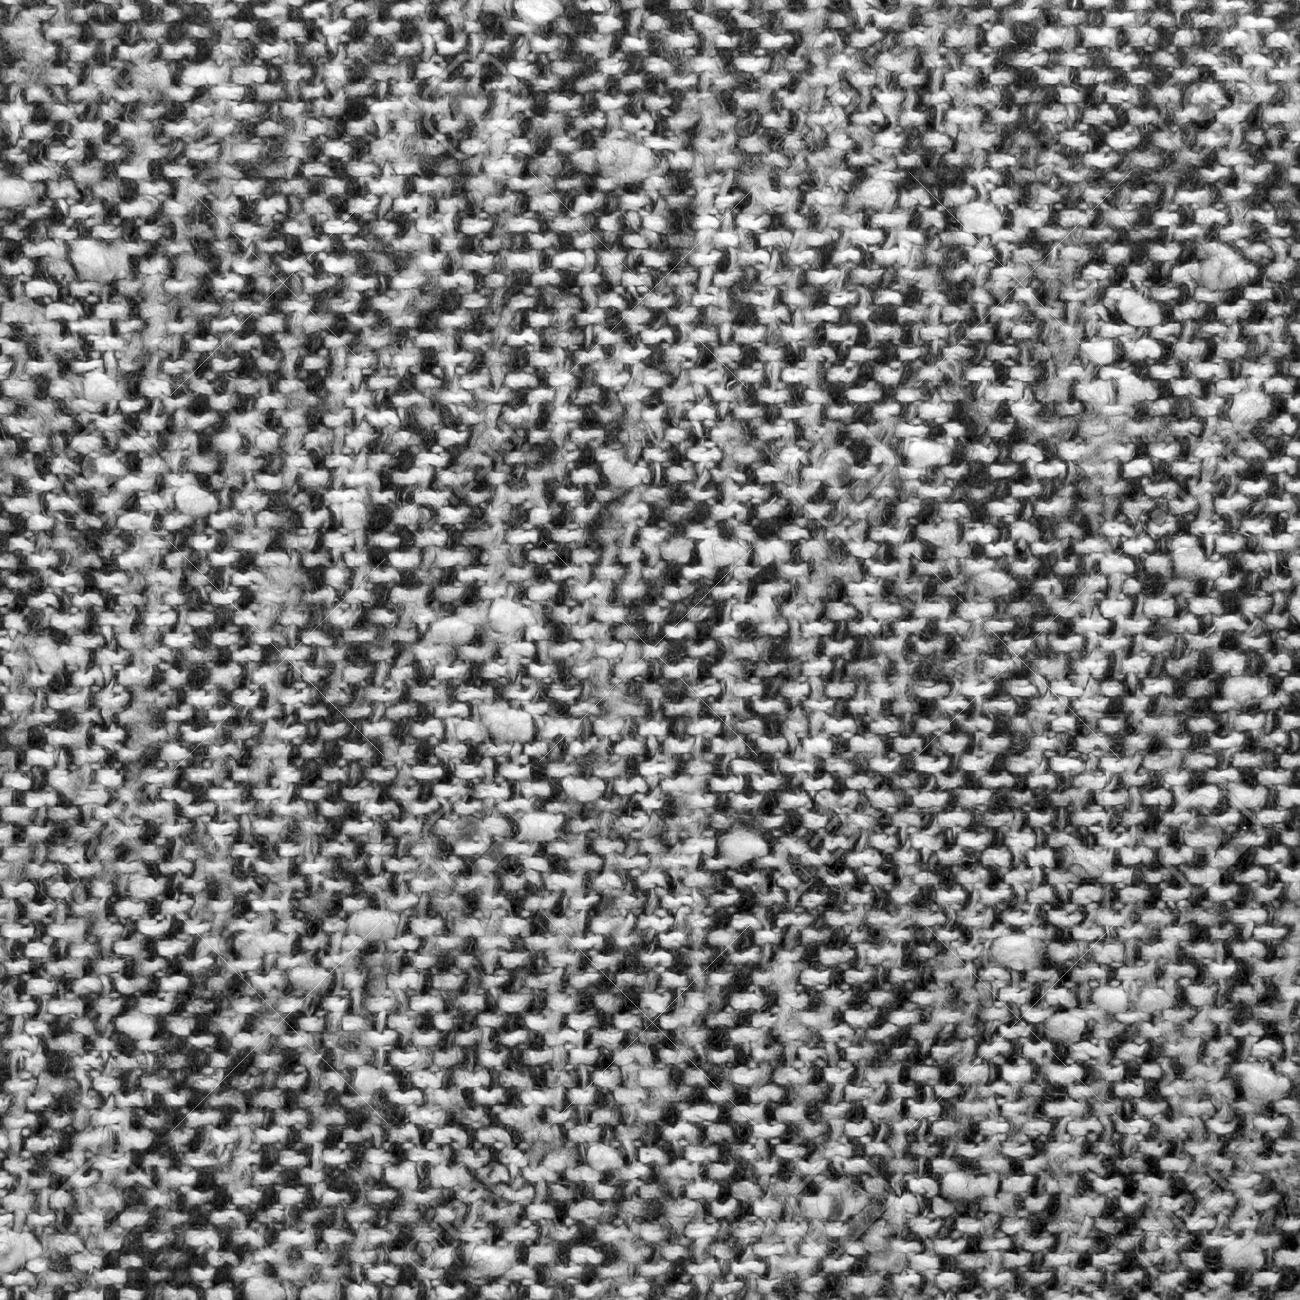 Grey tweed texture, gray wool pattern, textured salt and pepper style black and white melange fabric background Stock Photo - 13130771